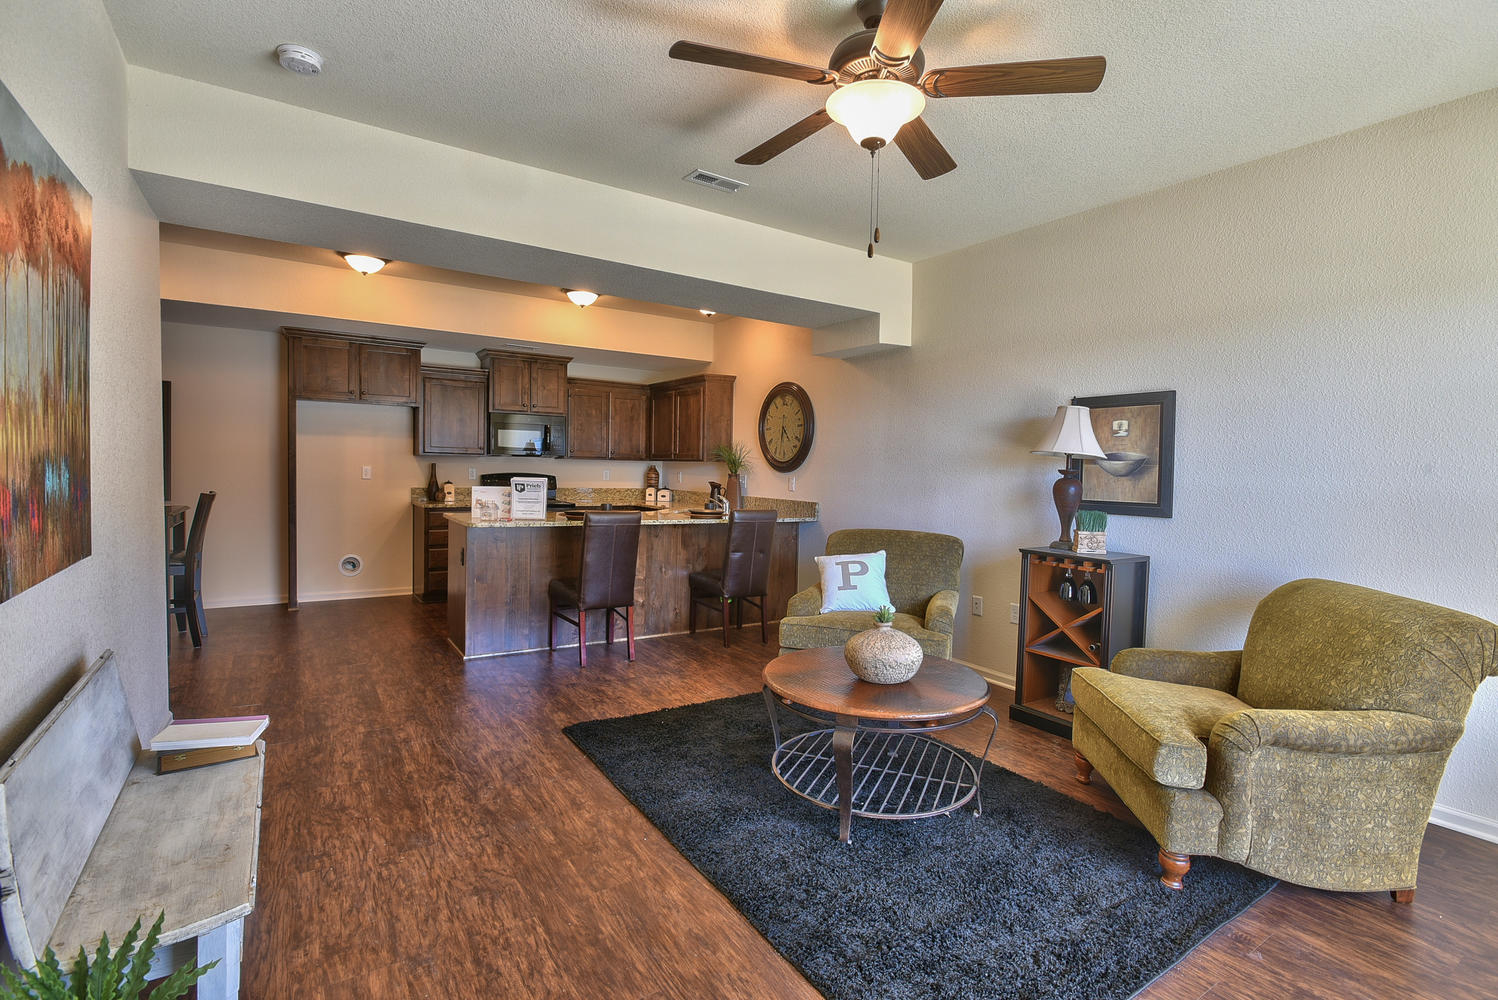 Vaulted Master Bedroom With Private Bath And Walk In Closet 2 Secondary Bedrooms Closets Full Hall Laundry Room